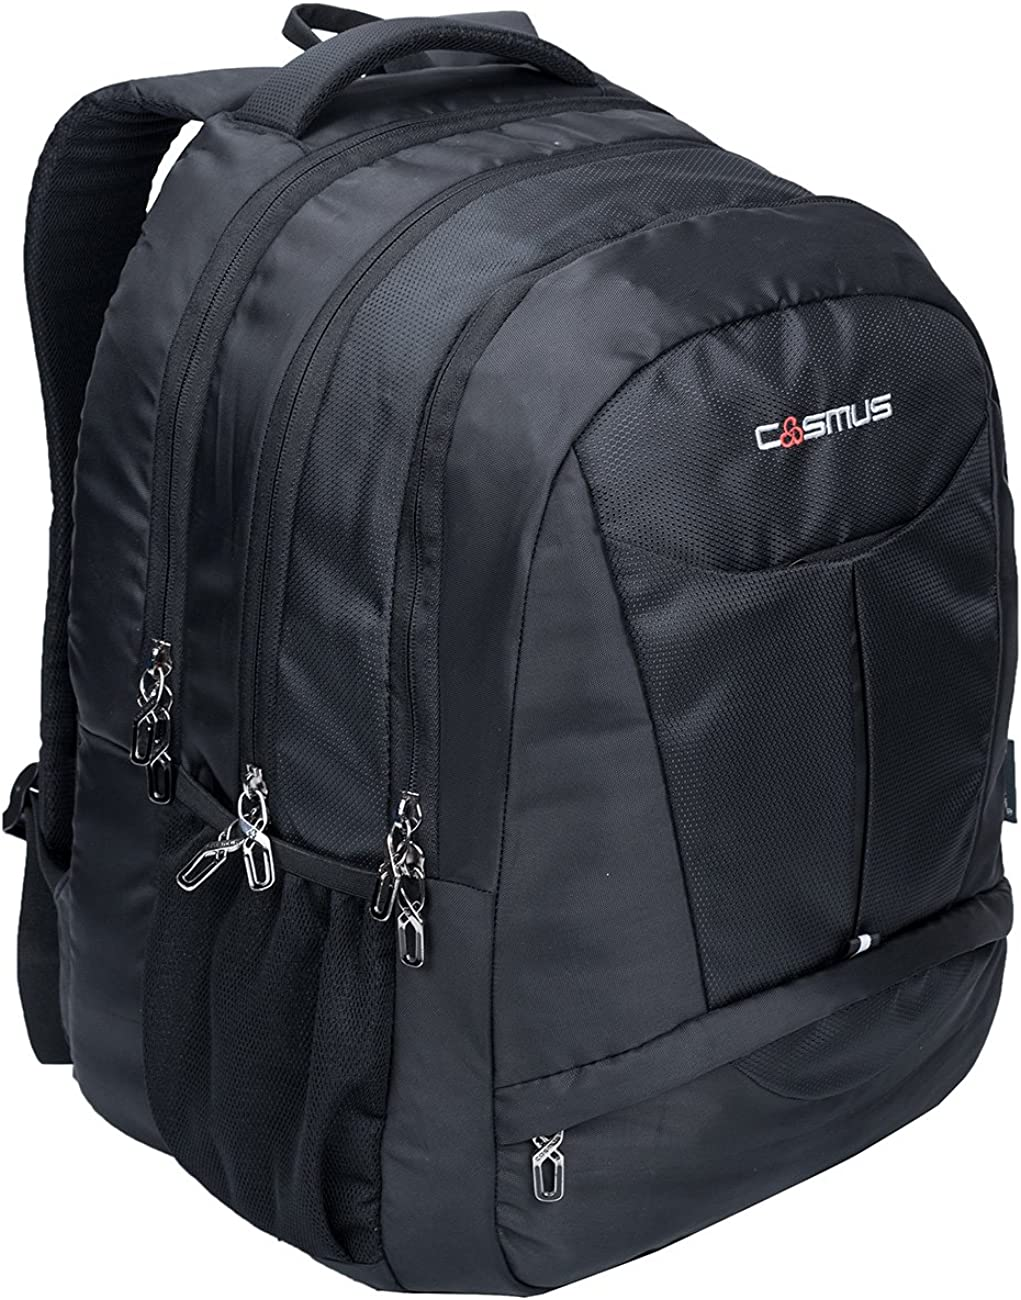 Cosmus Eden DX Black Polyester Waterproof Large Laptop Backpack